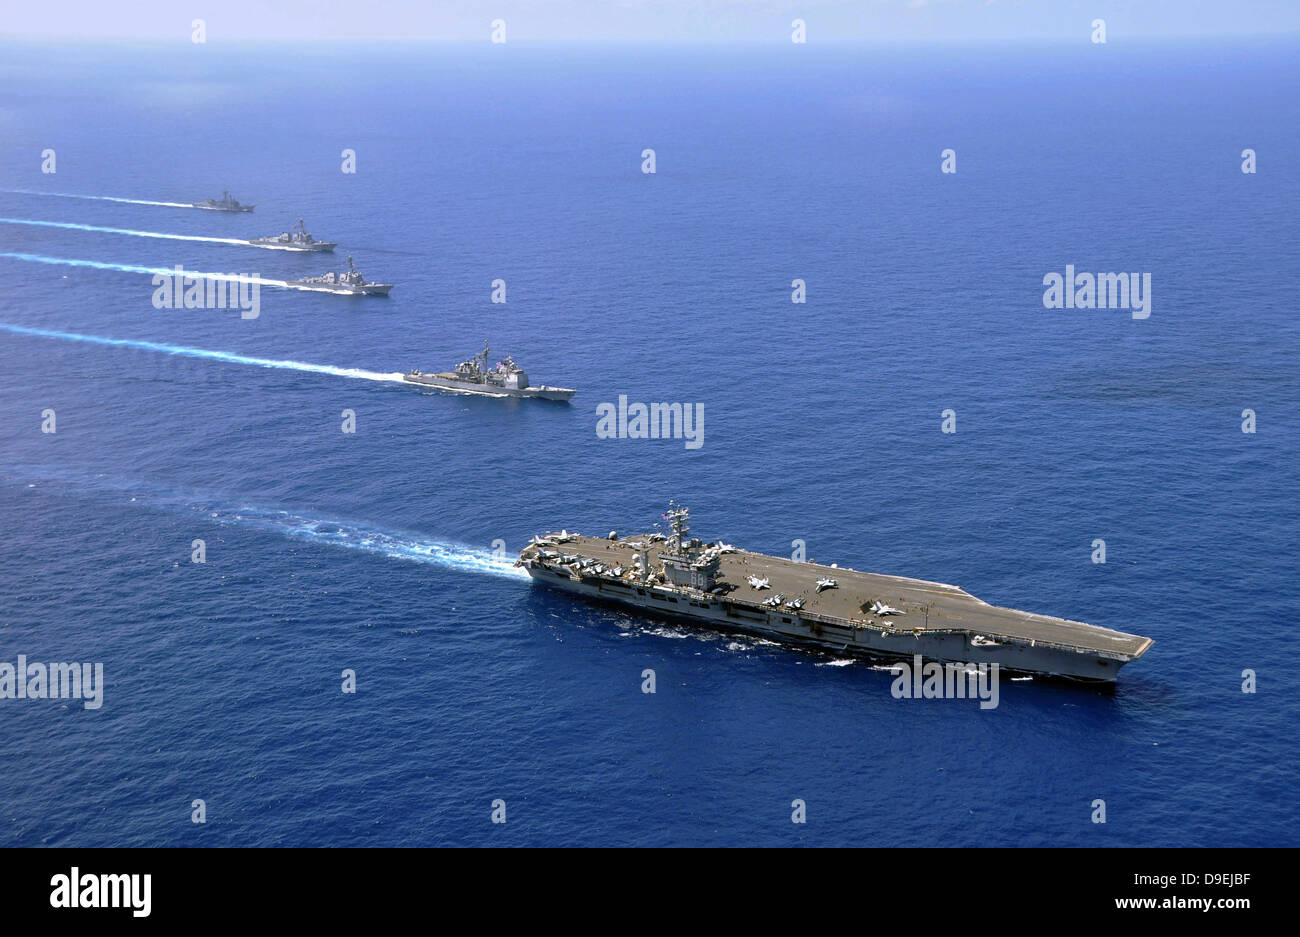 Military ships operate in formation in the South China Sea. - Stock Image